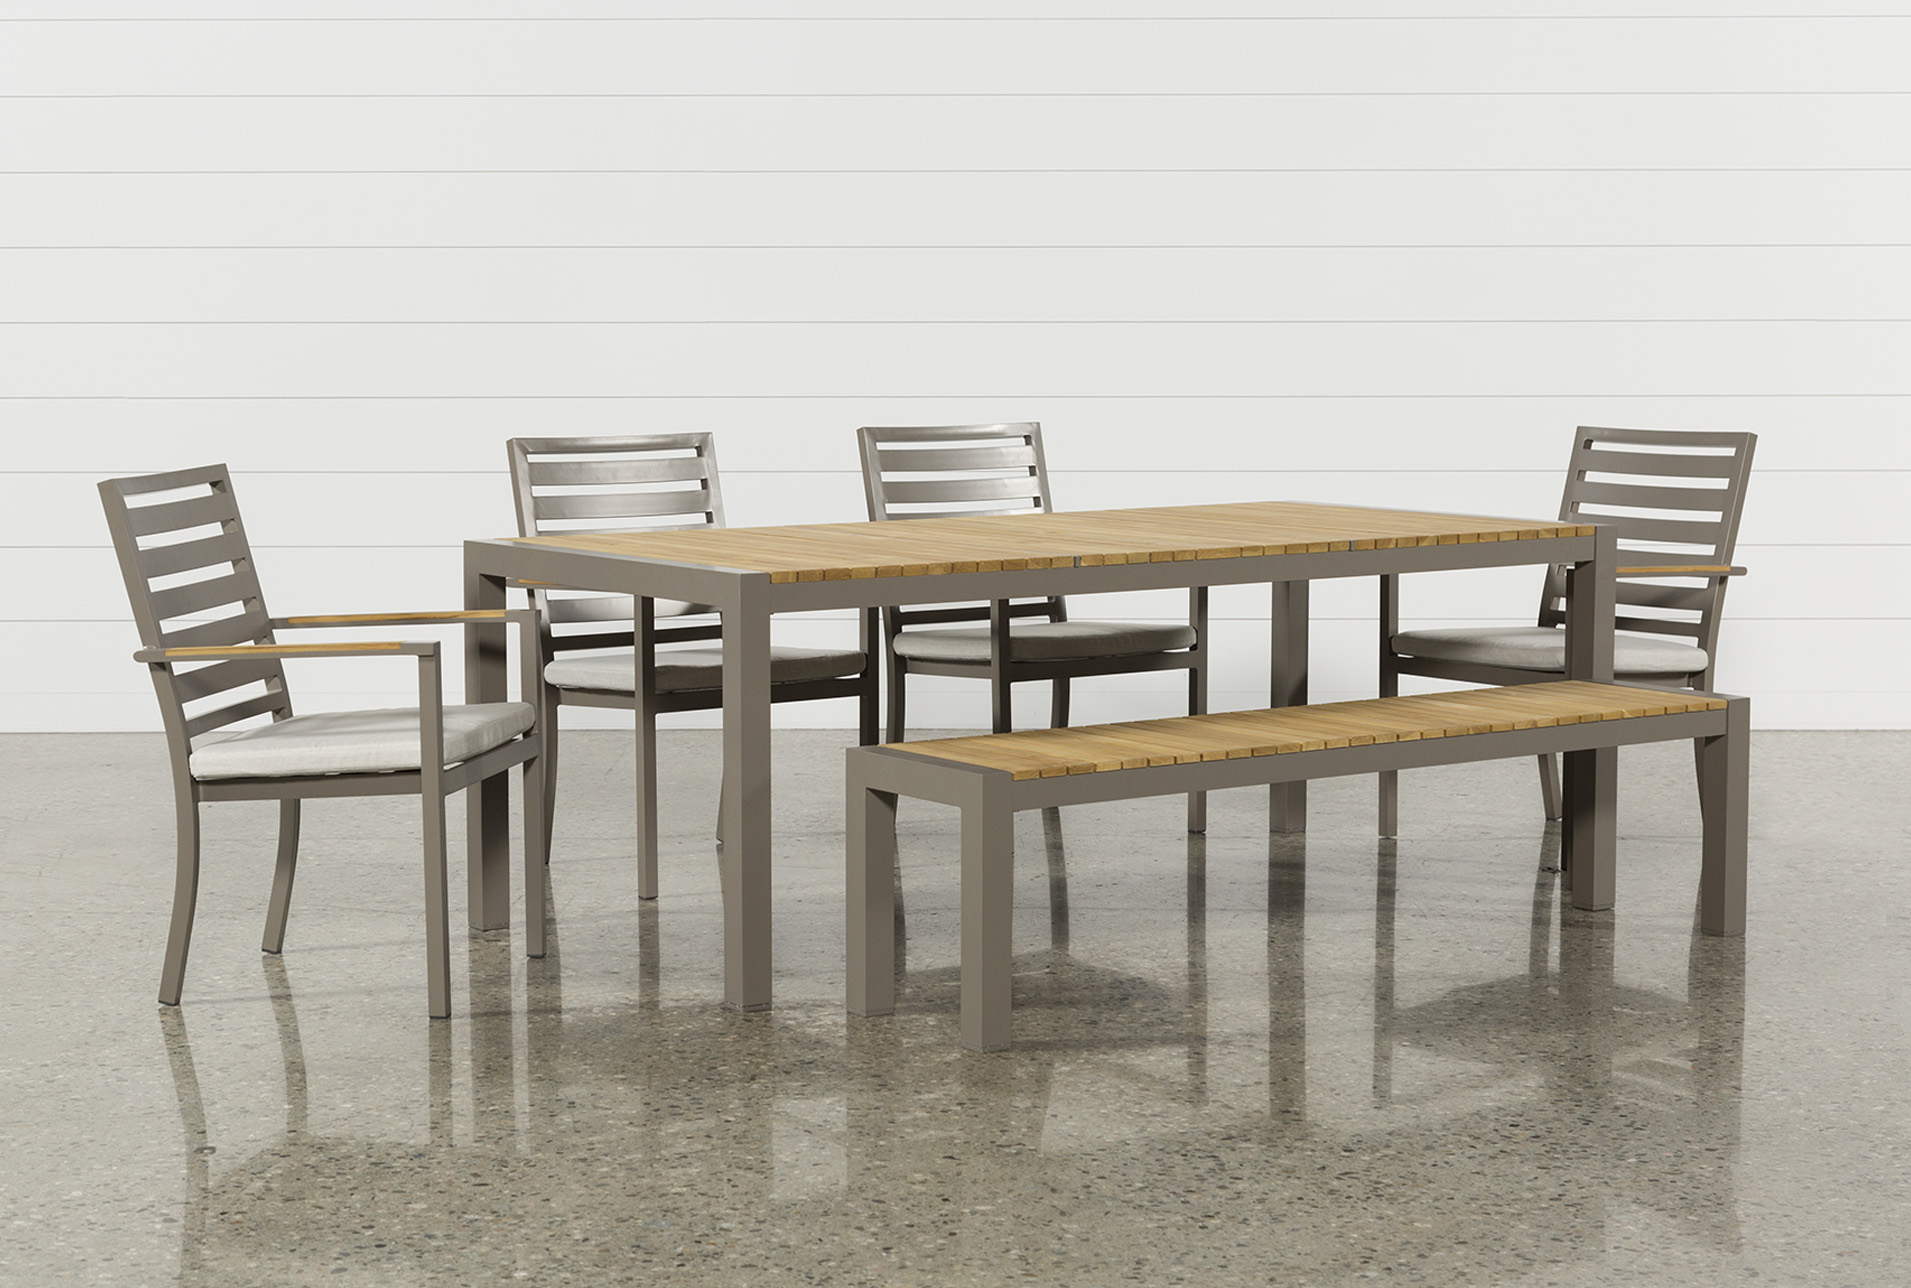 Outdoor Brasilia Teak Dining Table With 4 Chairs And 1 Bench